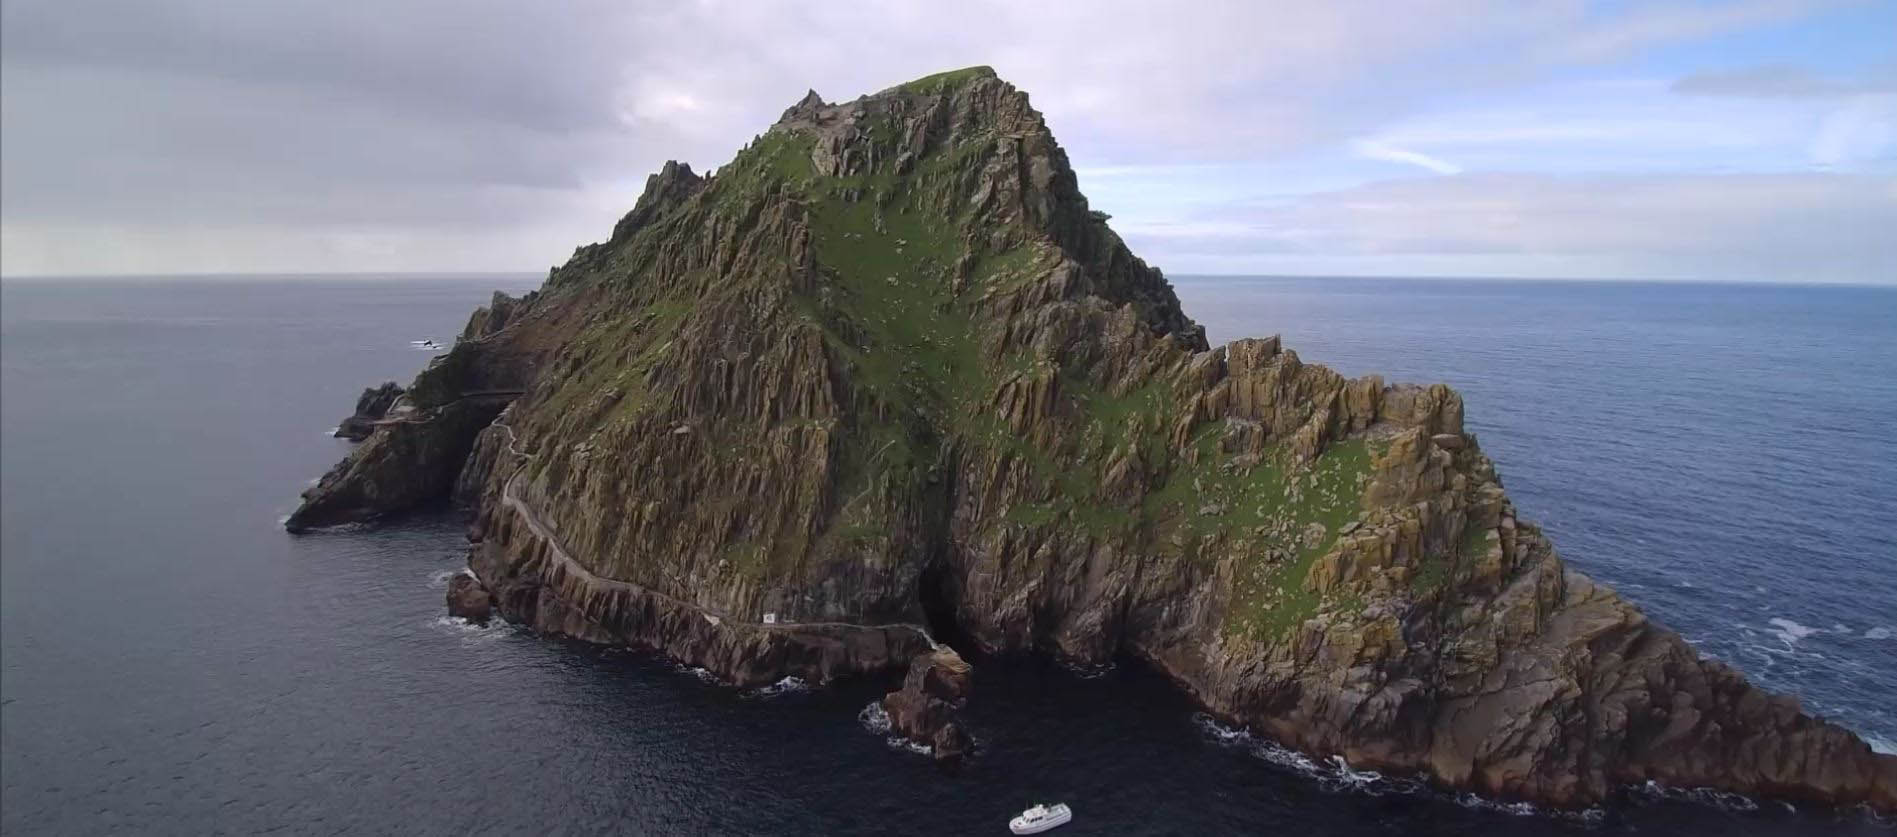 skellig michael drone image by skellig michael cruises